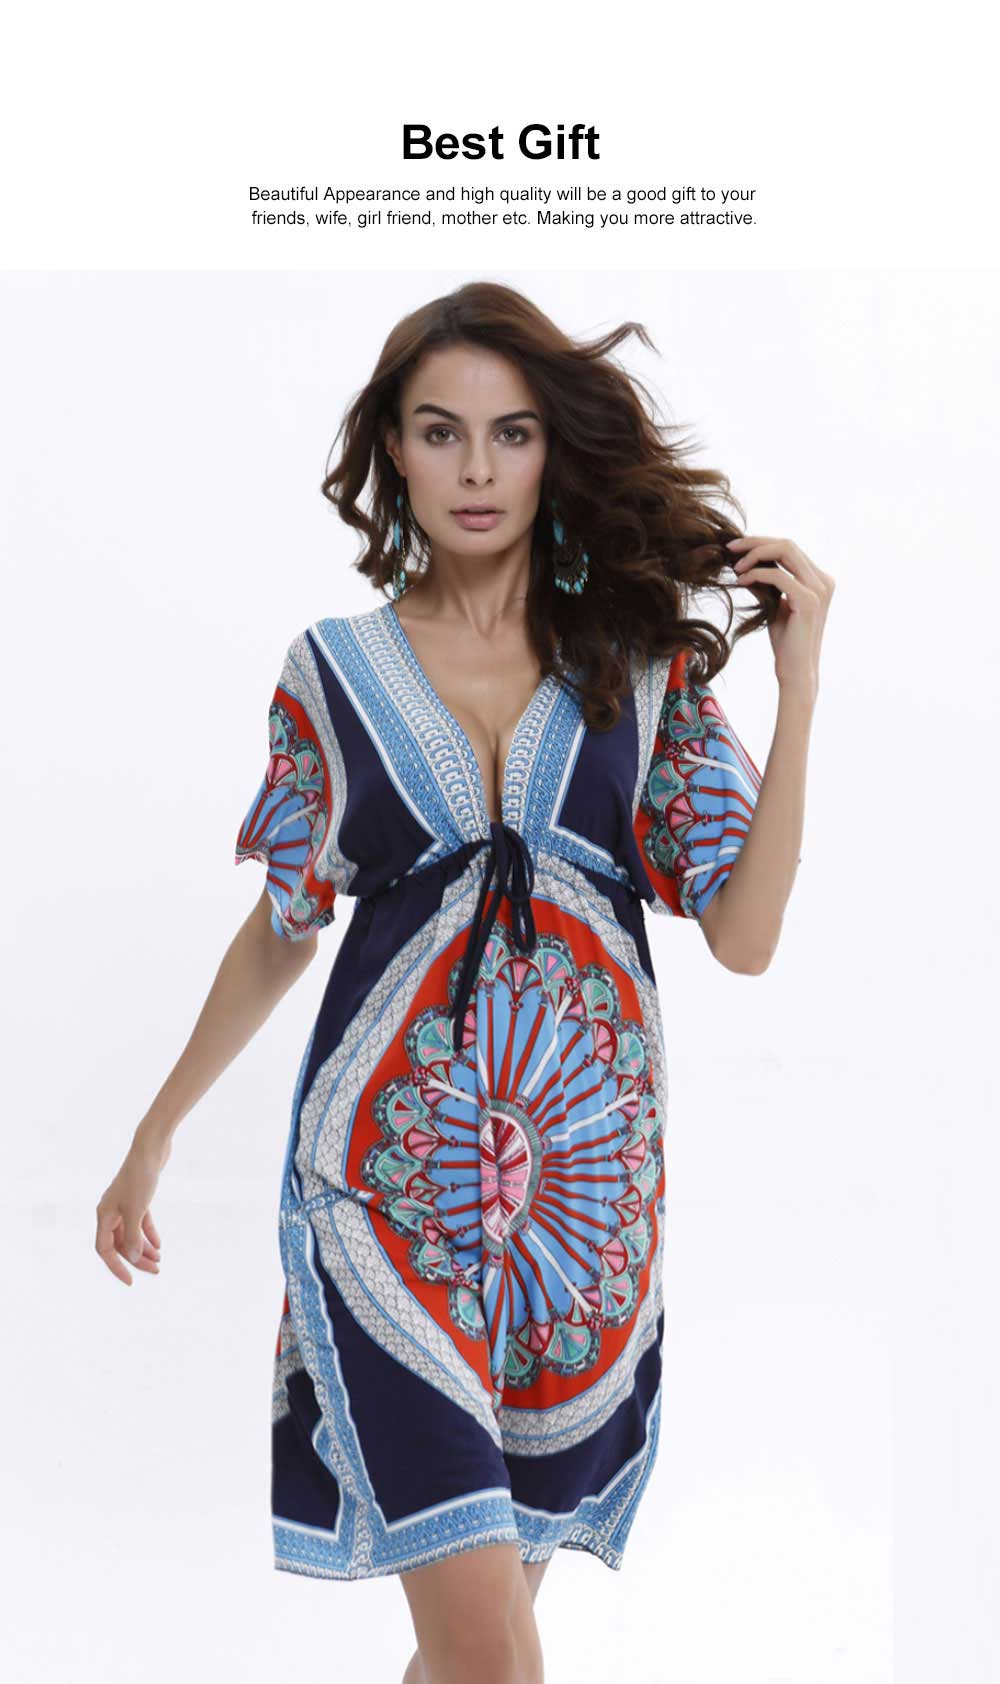 Women's Sexy Dress, Summer V-neck Bohemian Floral Printed Mini Dress, Knee High Dress with Belt for Gifts 1